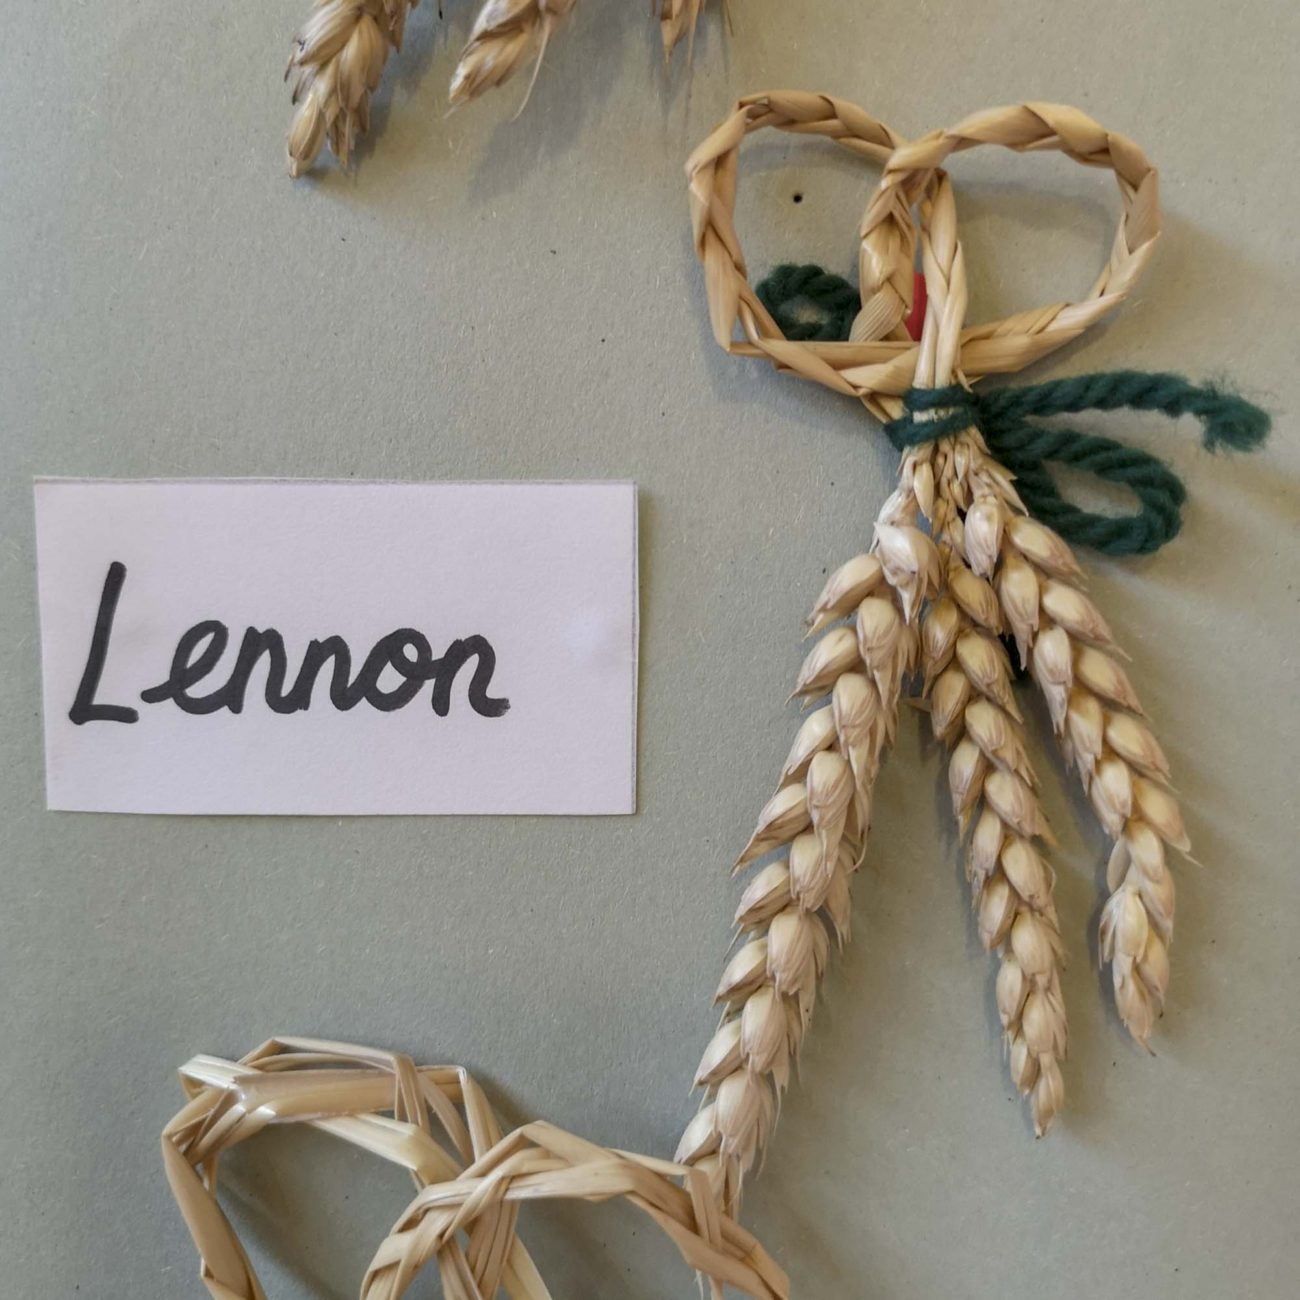 Traditional Harvest Festival Michaelmas plaits of corn - crafts in Class 3 at Ringwood Waldorf School